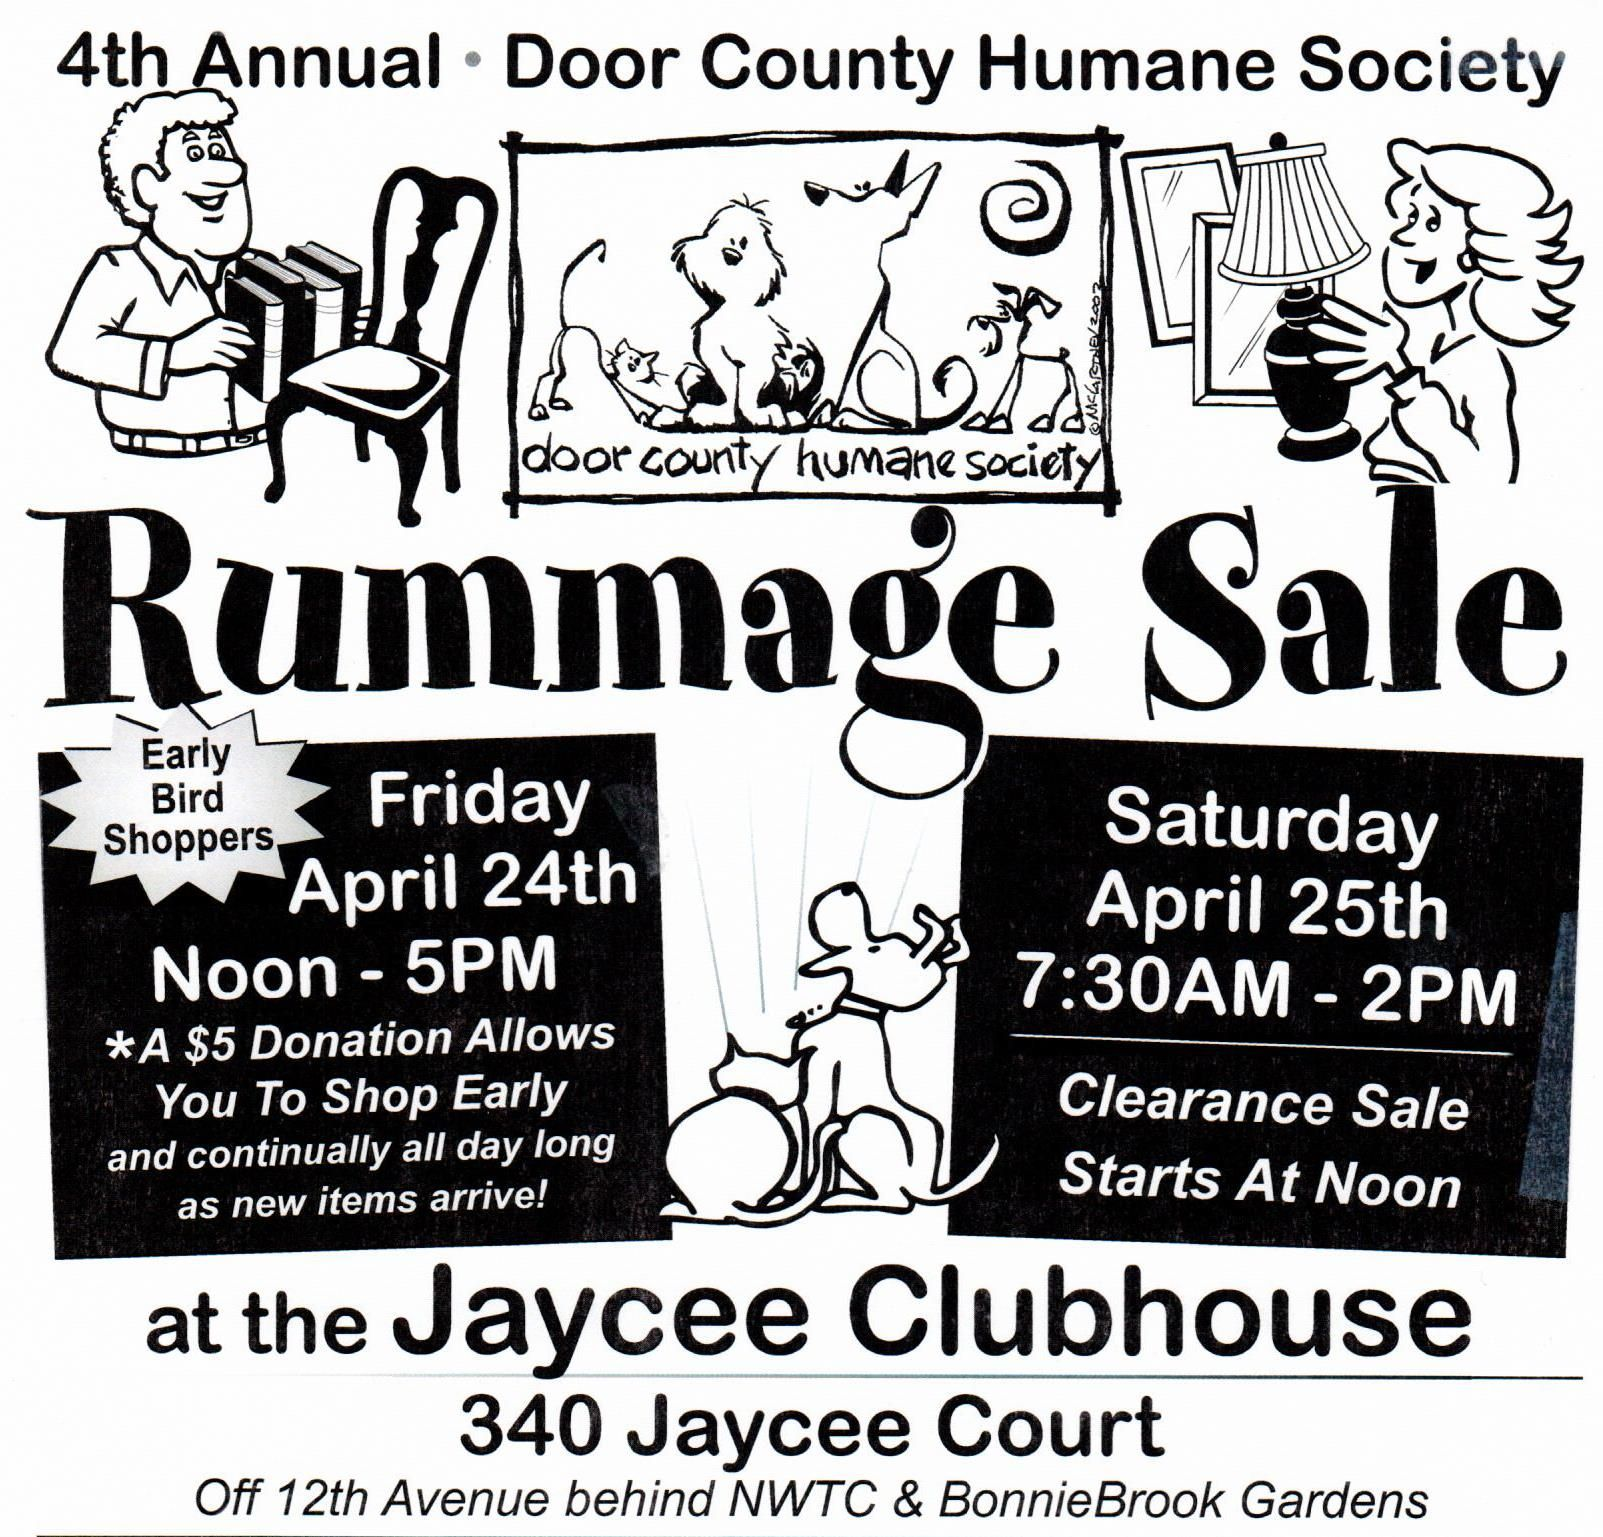 Support the Door County Humane Society by shopping or donating to